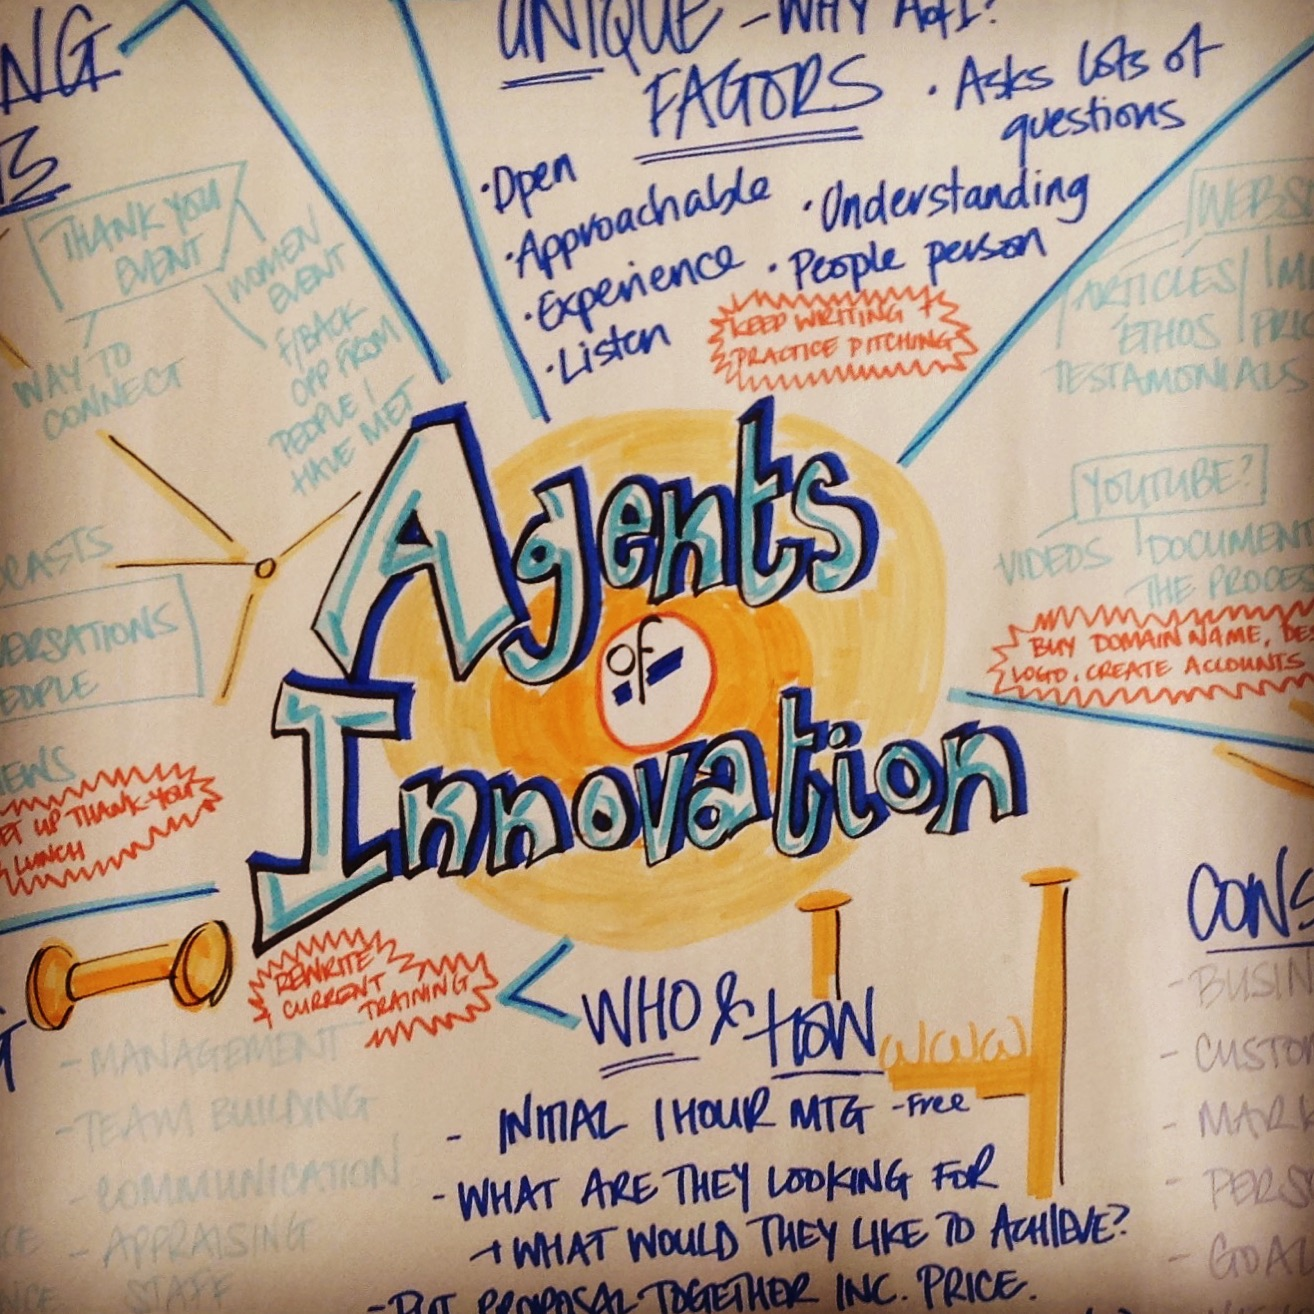 MIND MAP - the birth of Agents of Innovation. Such a great tool to empty your head of all your ideas.